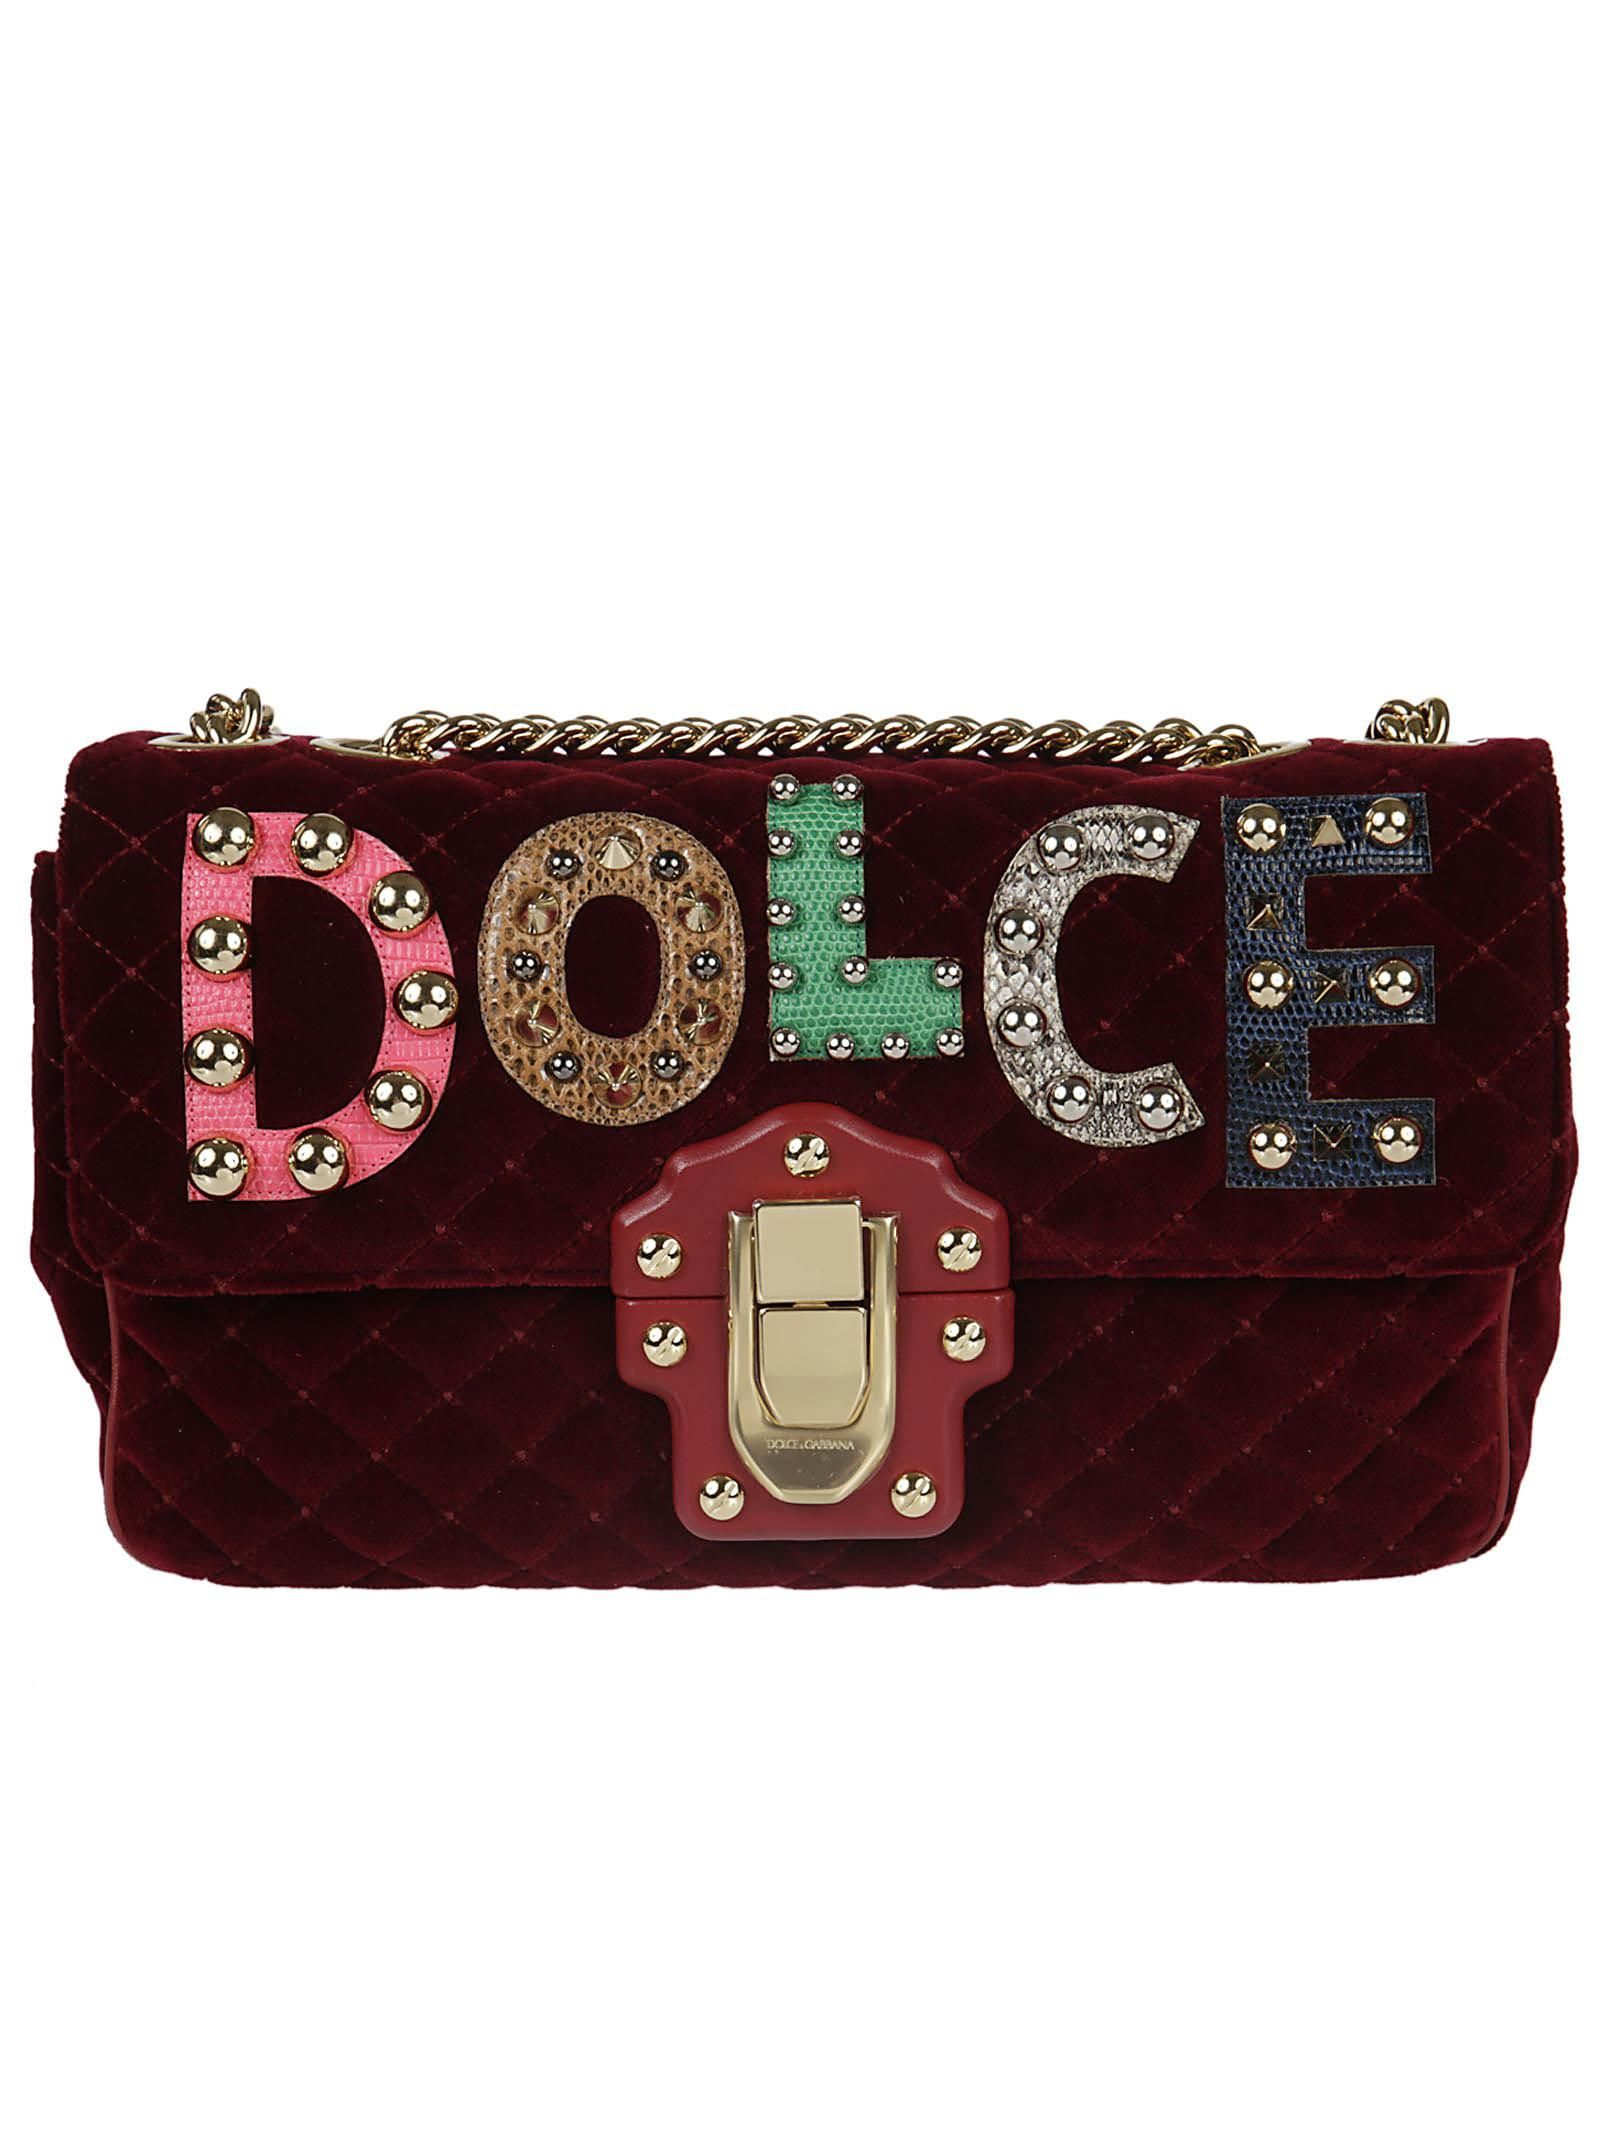 28b0d2ba56 DOLCE   GABBANA DOLCE   GABBANA LUCIA QUILTED SHOULDER BAG.  dolcegabbana   bags  shoulder bags  leather  cotton